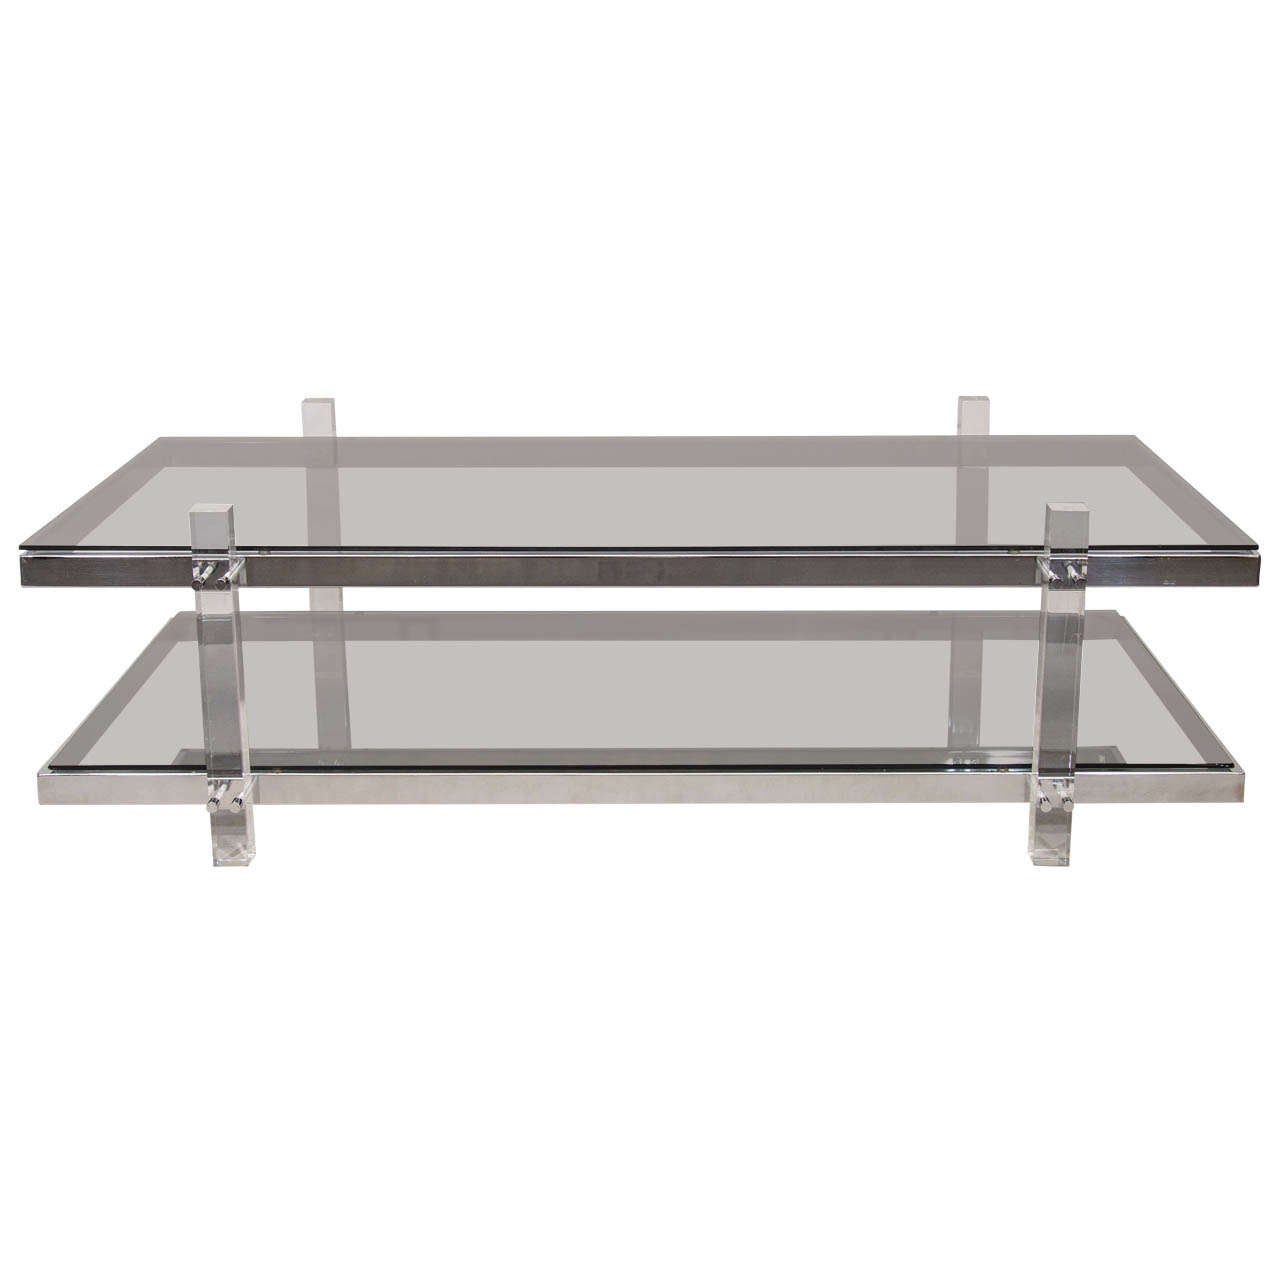 Chrome Lucite And Smoke Tinted Glass Coffee Table In The Manner Of Charles Hollis Jones At 1stdibs